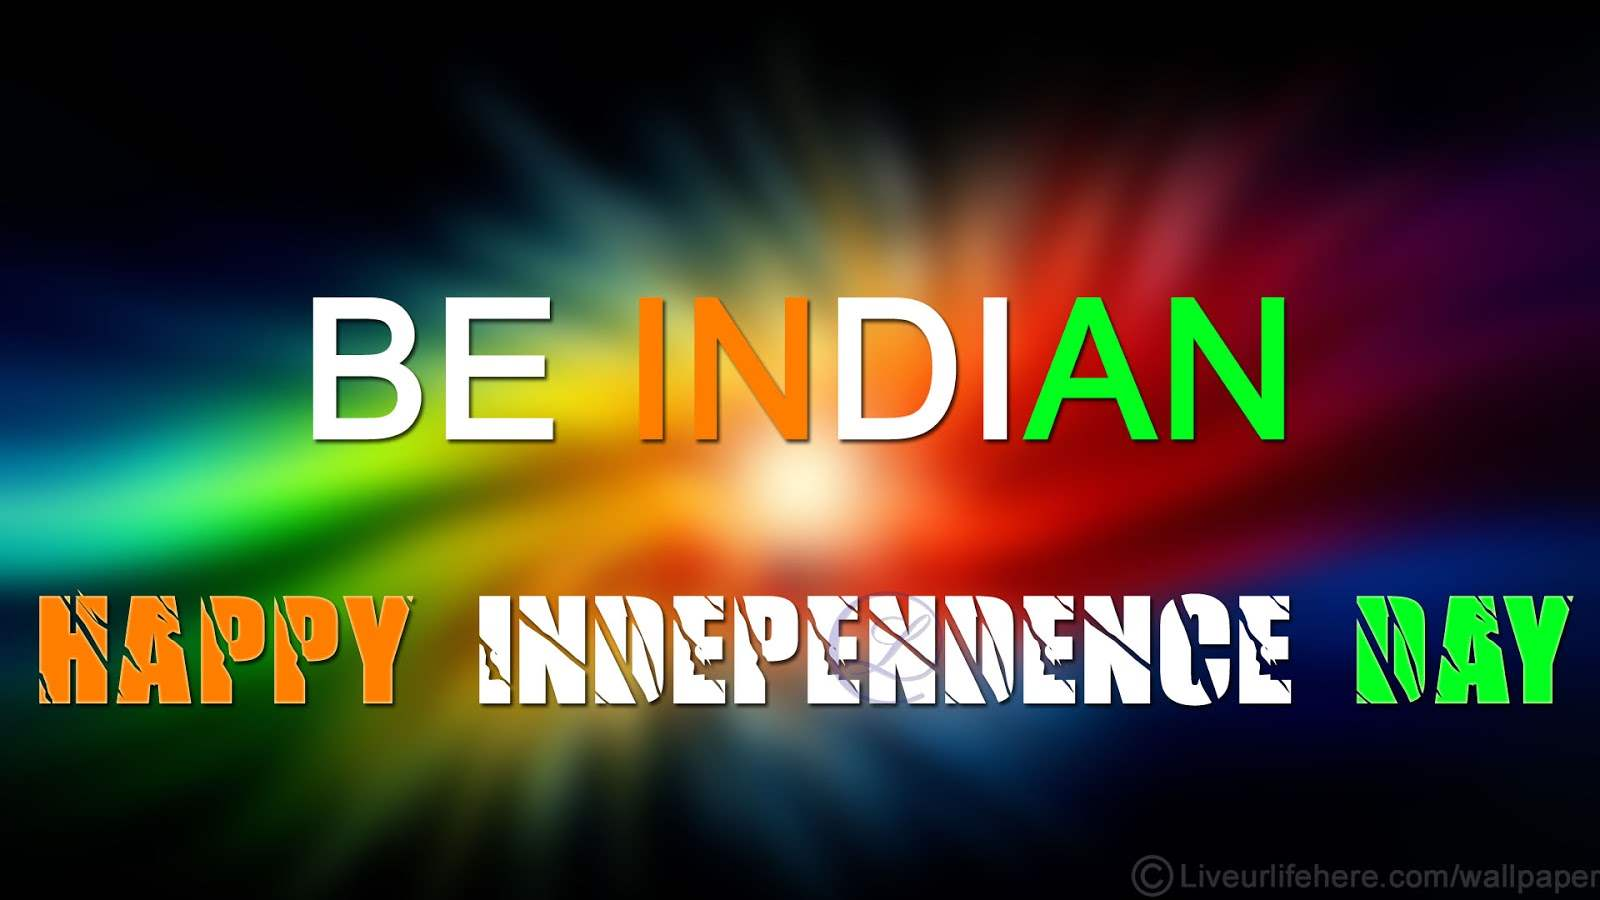 Indian Independence Day Wallpapers Cws - Hd Image Of Independence Day , HD Wallpaper & Backgrounds